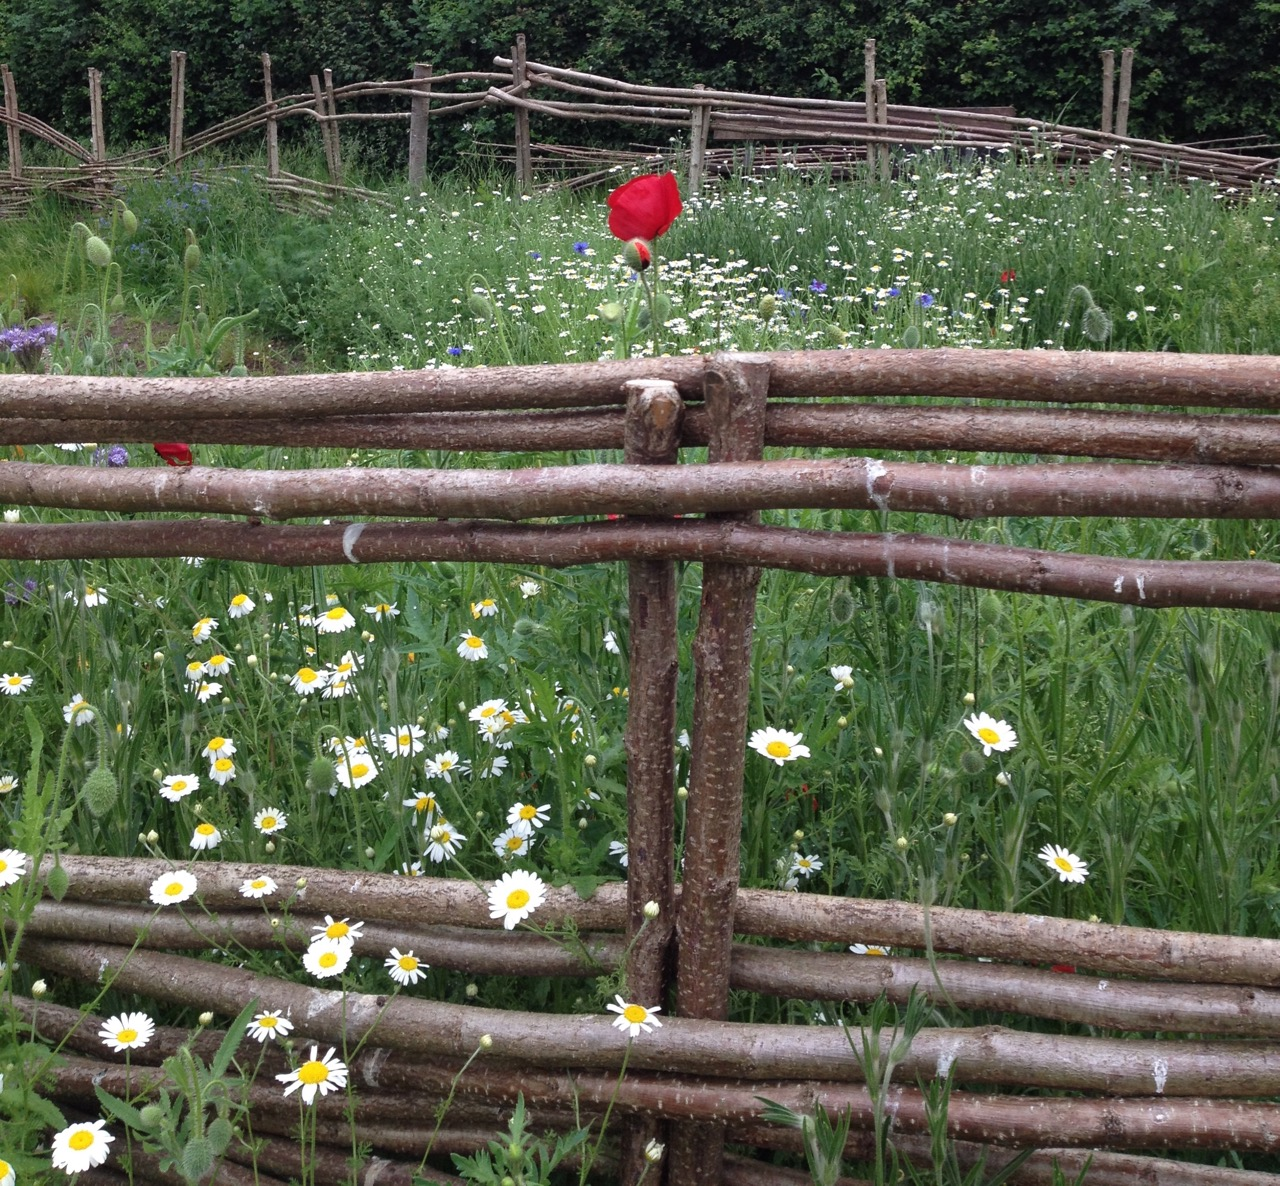 Tall poppy syndrome... over the woven fence...